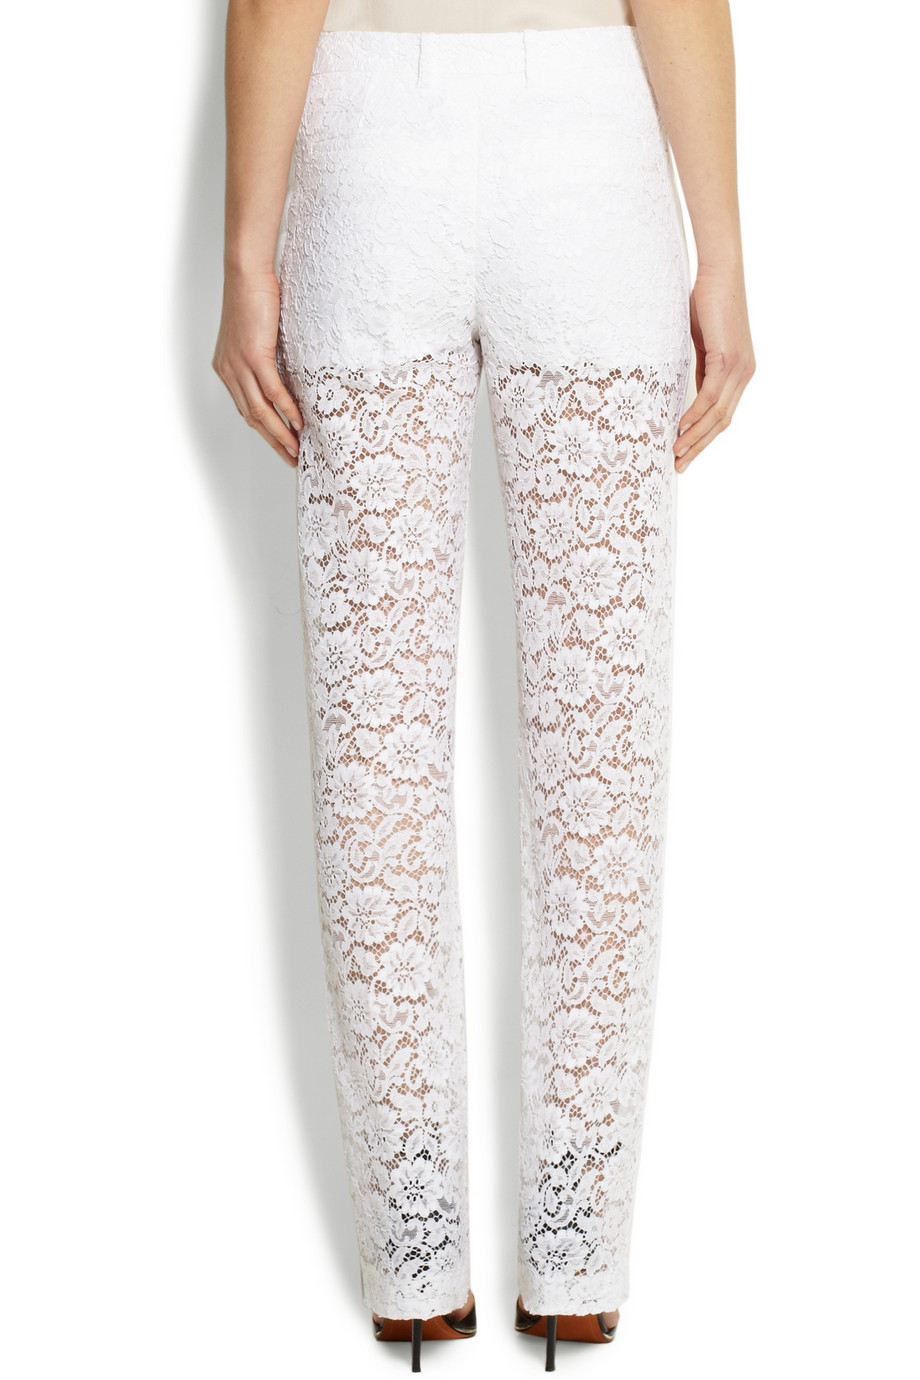 lyst givenchy white lace pants in white